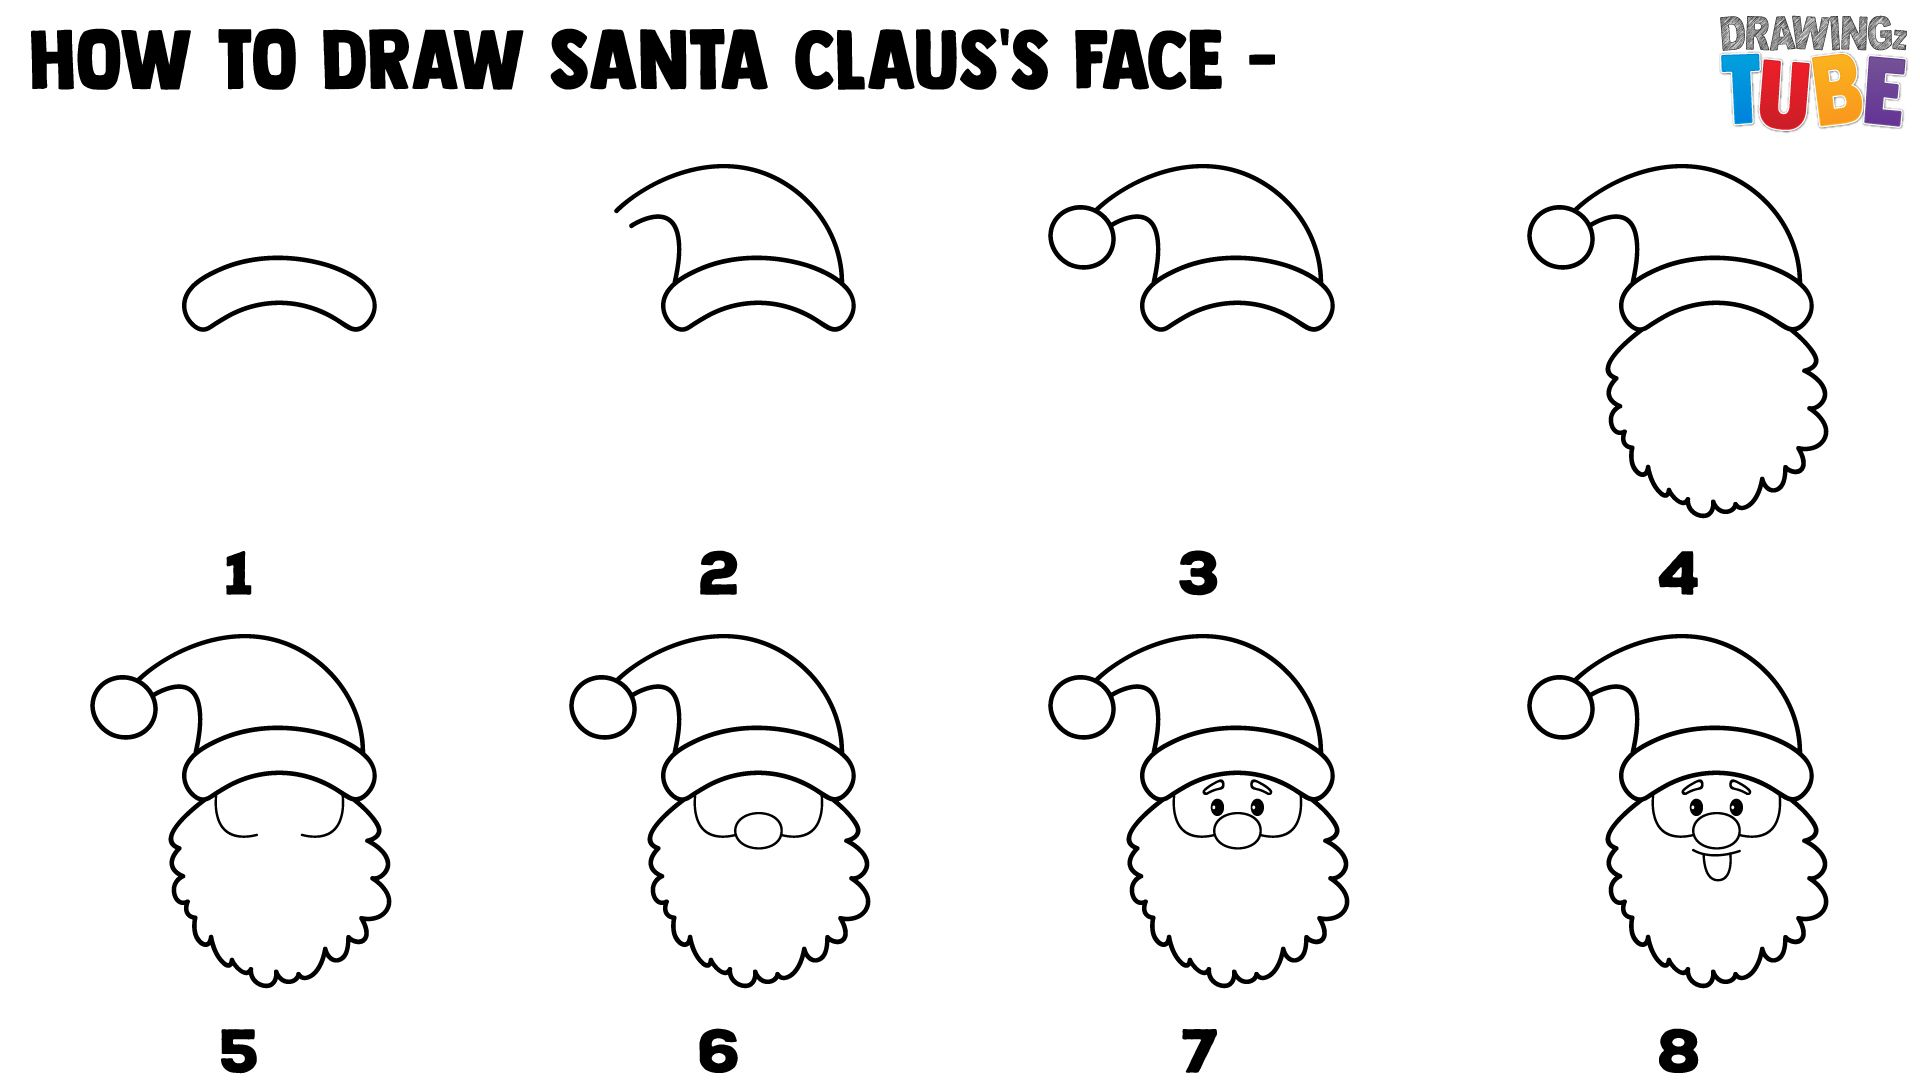 christmas drawings step by step how to draw a christmas tree skip to my lou drawings step christmas by step